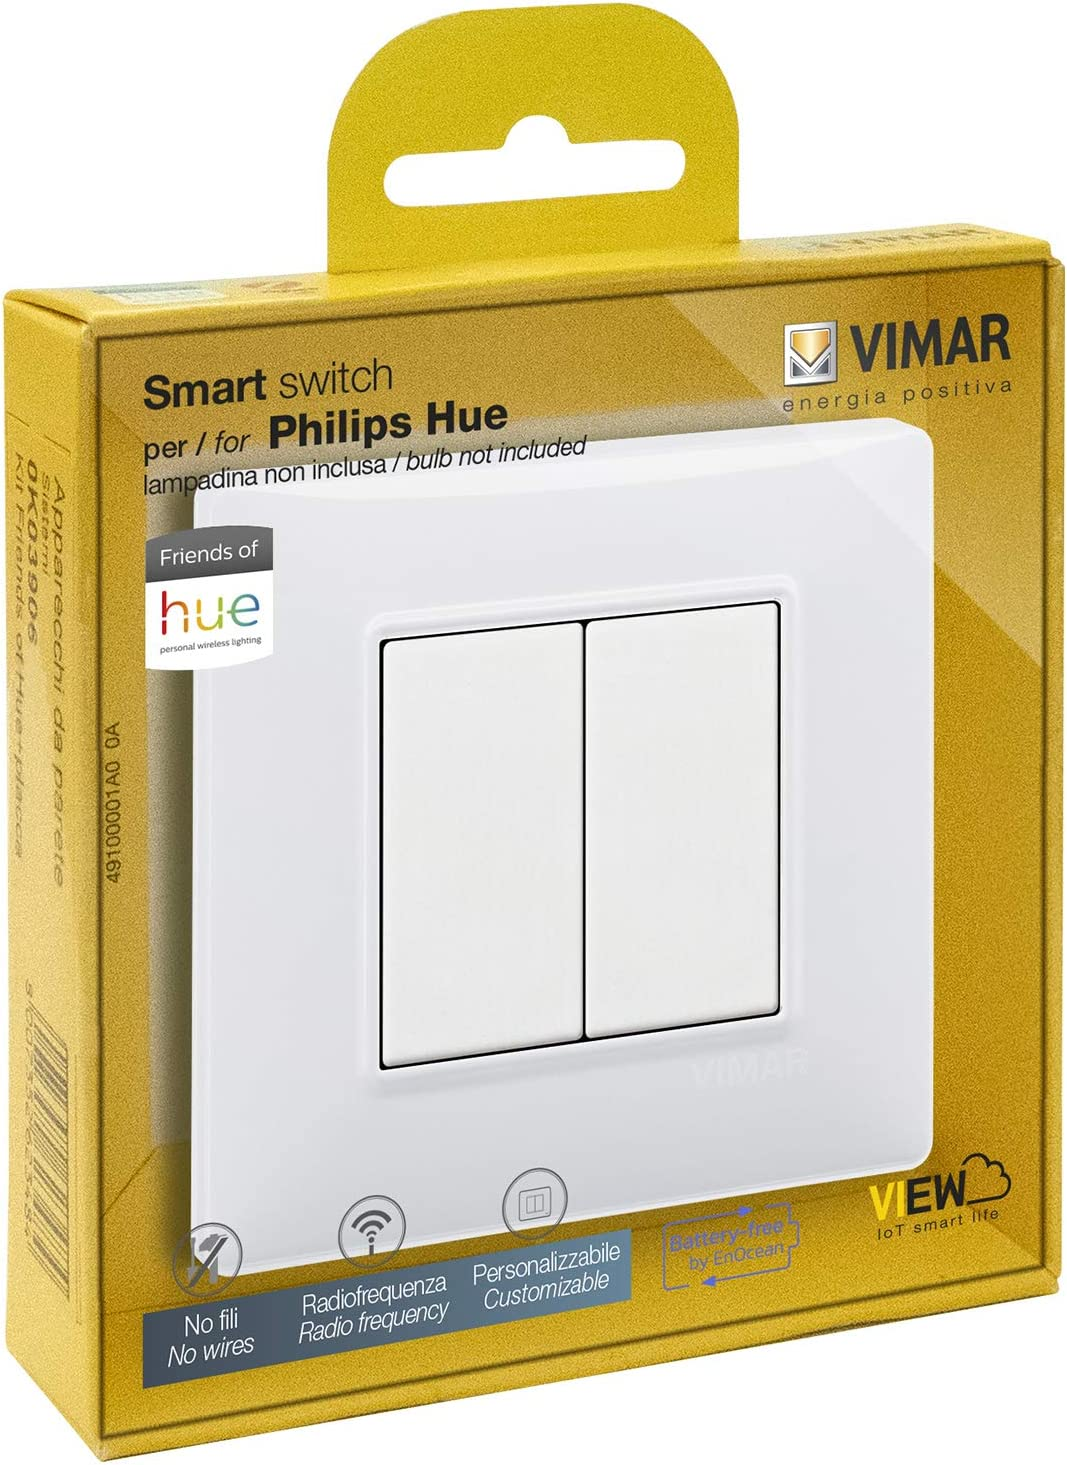 VIMAR 0K03906.04 Plana Kit Interrupteur sans Fil en radiofréquence Philips Friends of...